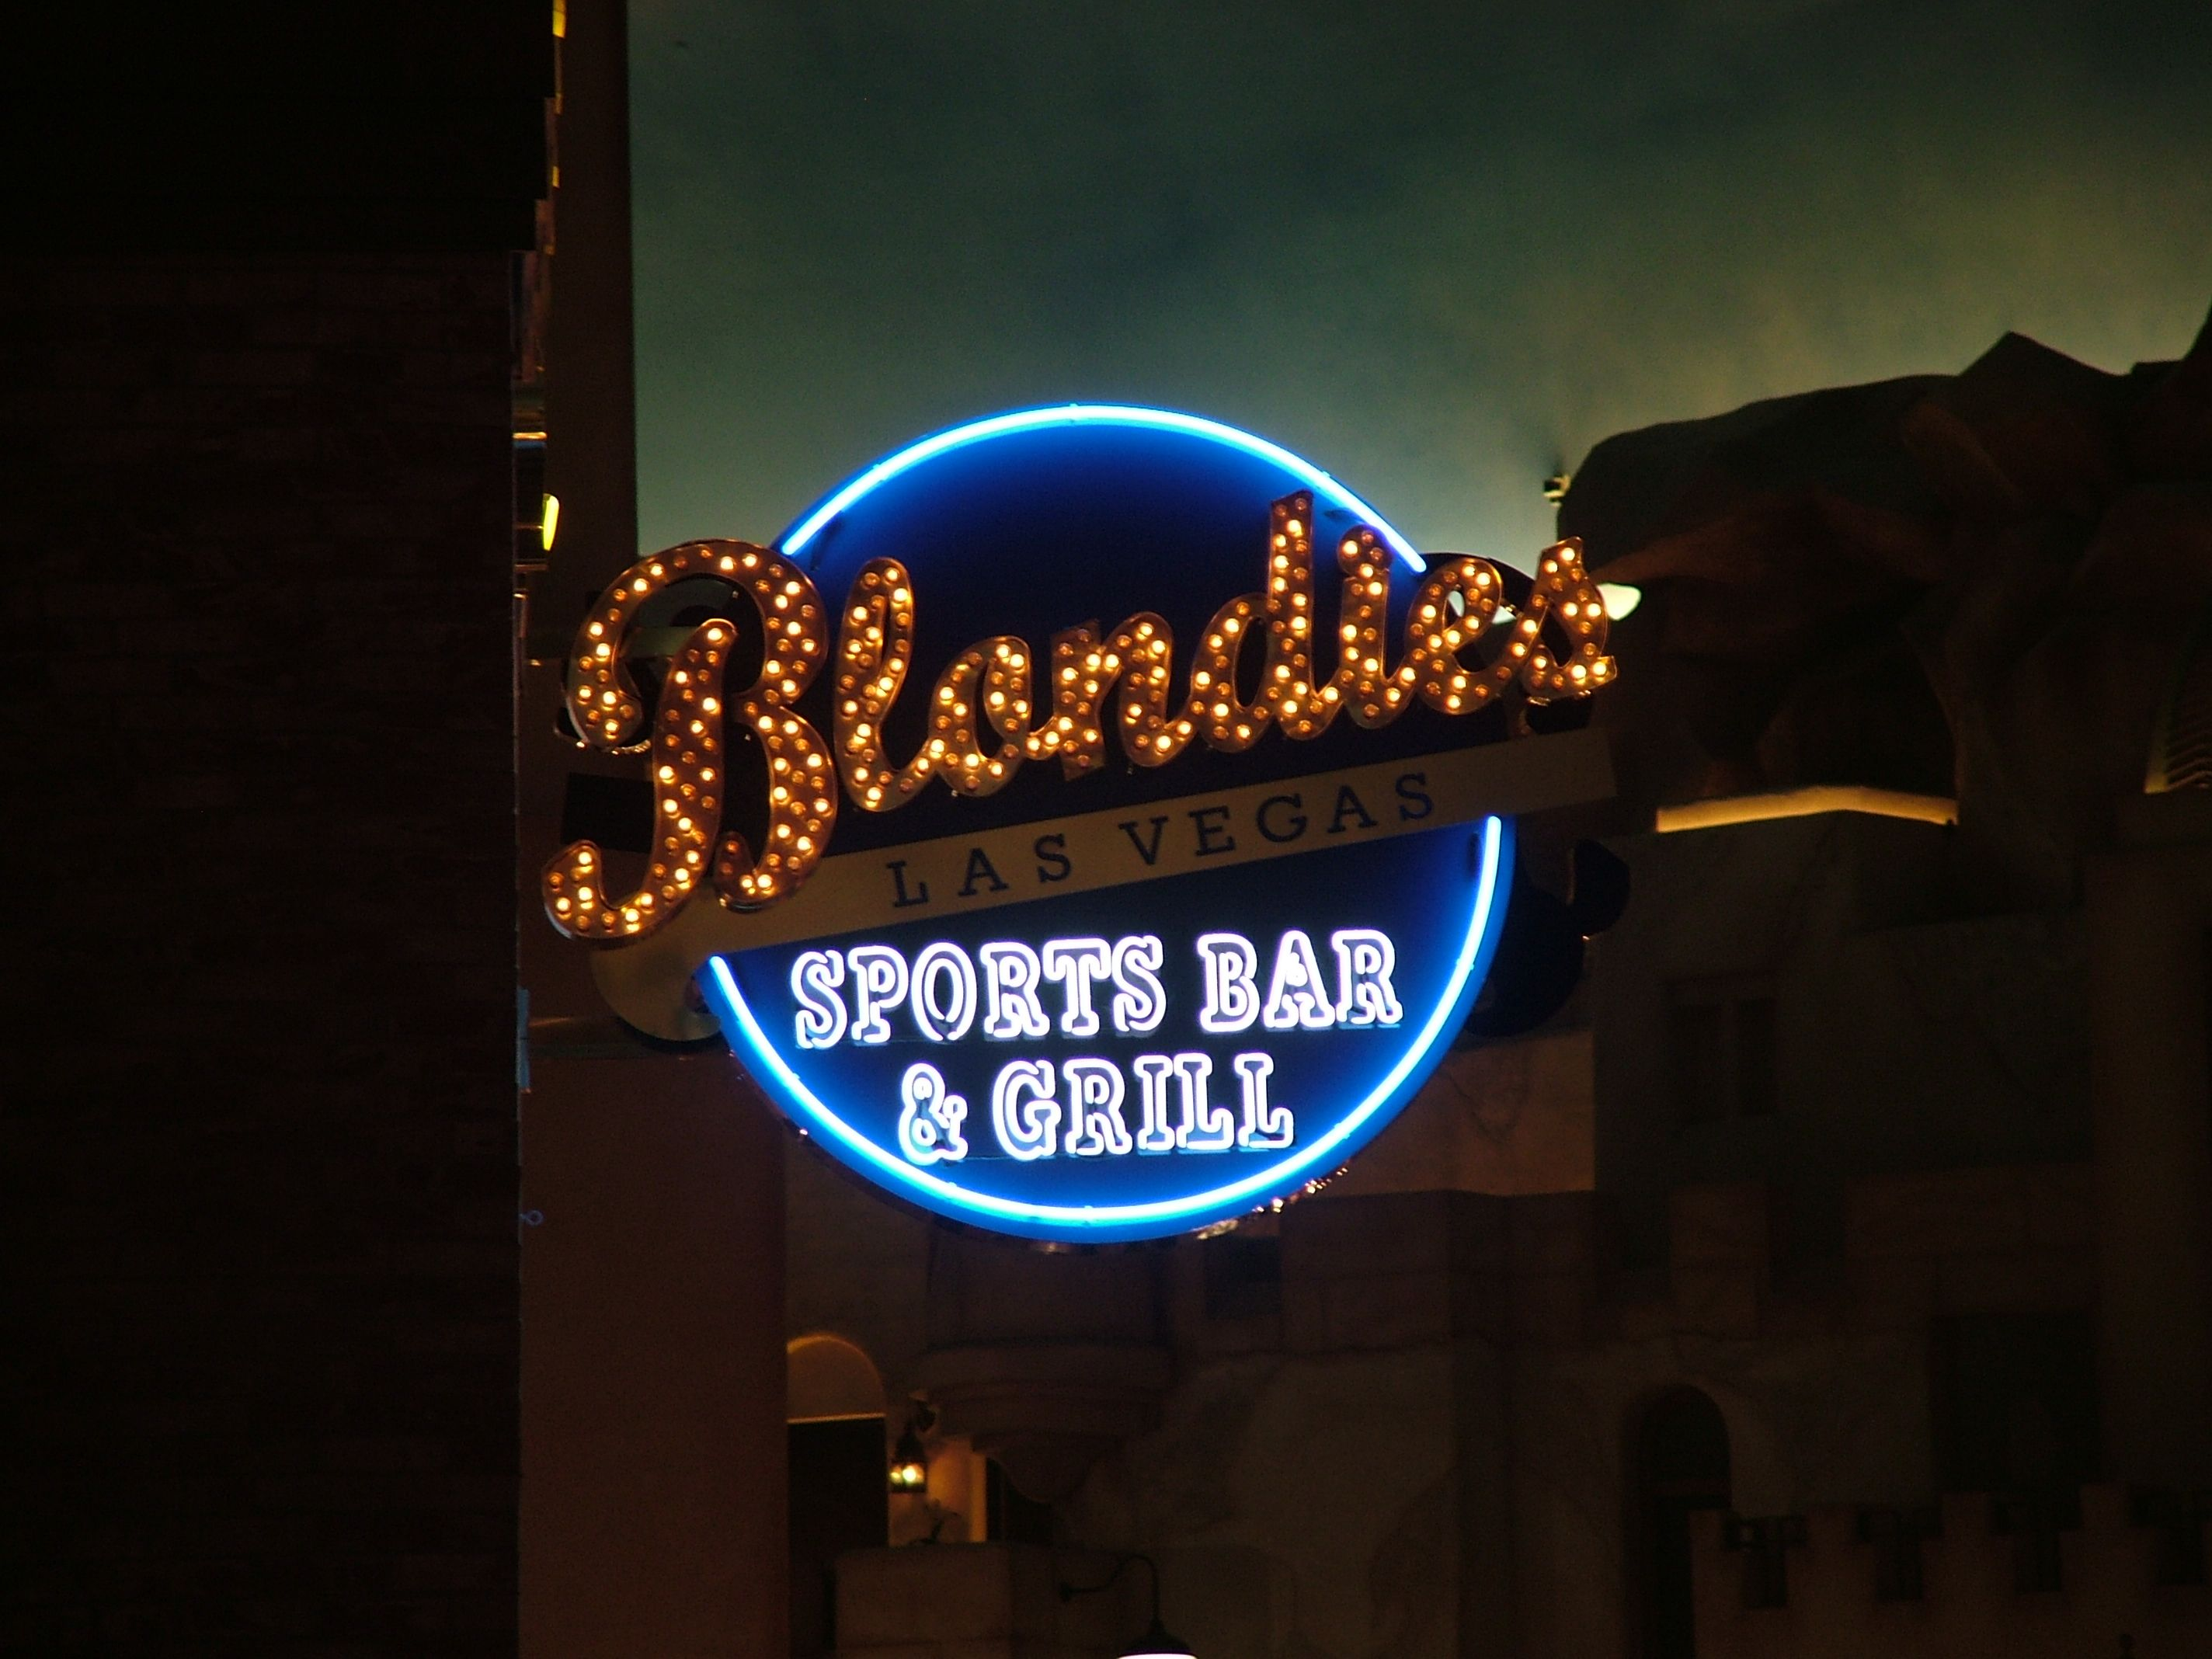 Blondies Sports Bar & Grill Sports bar, Bar grill, Las vegas